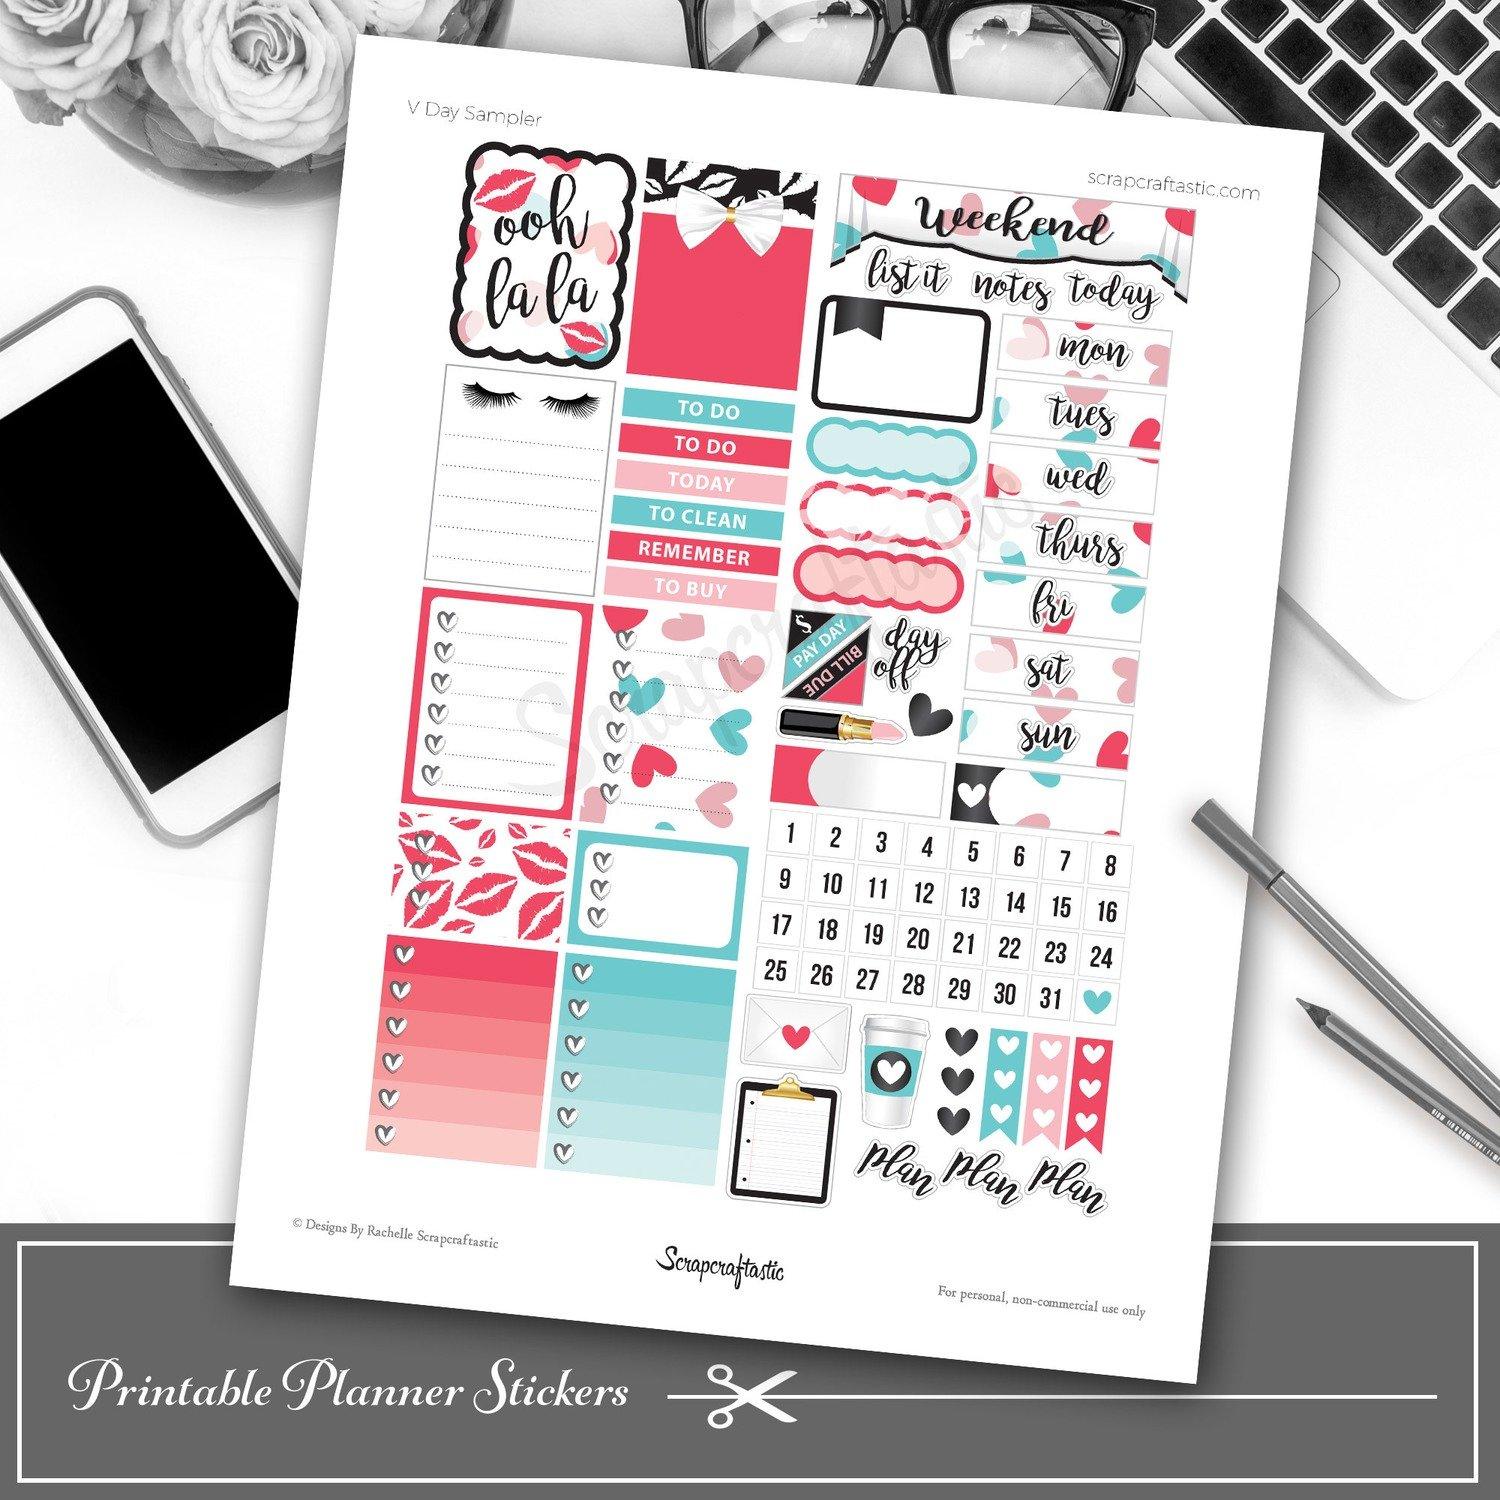 V Day Printable Planner Stickers